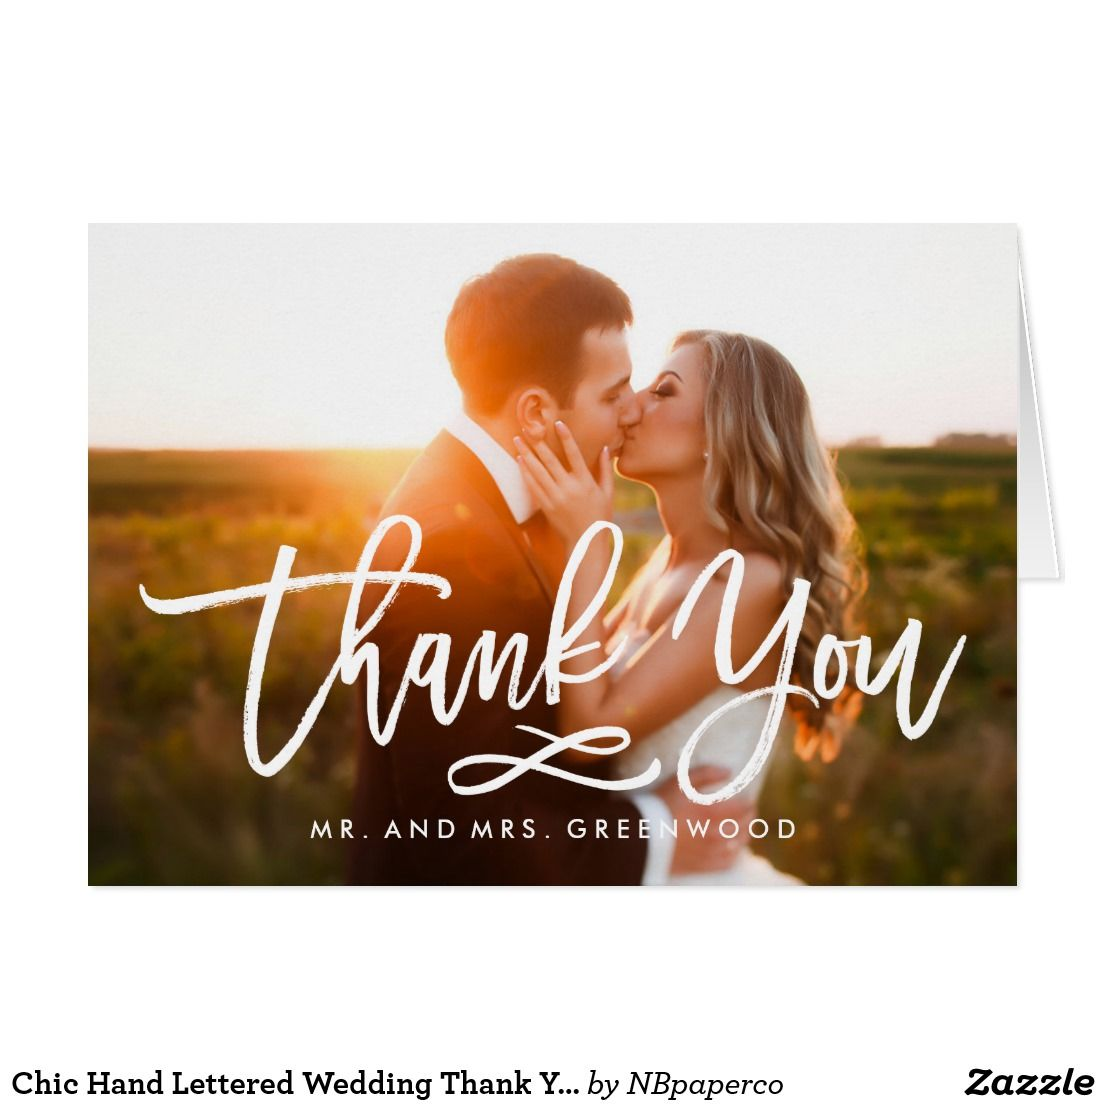 Zazzle Chic Hand Lettered Wedding Thank You